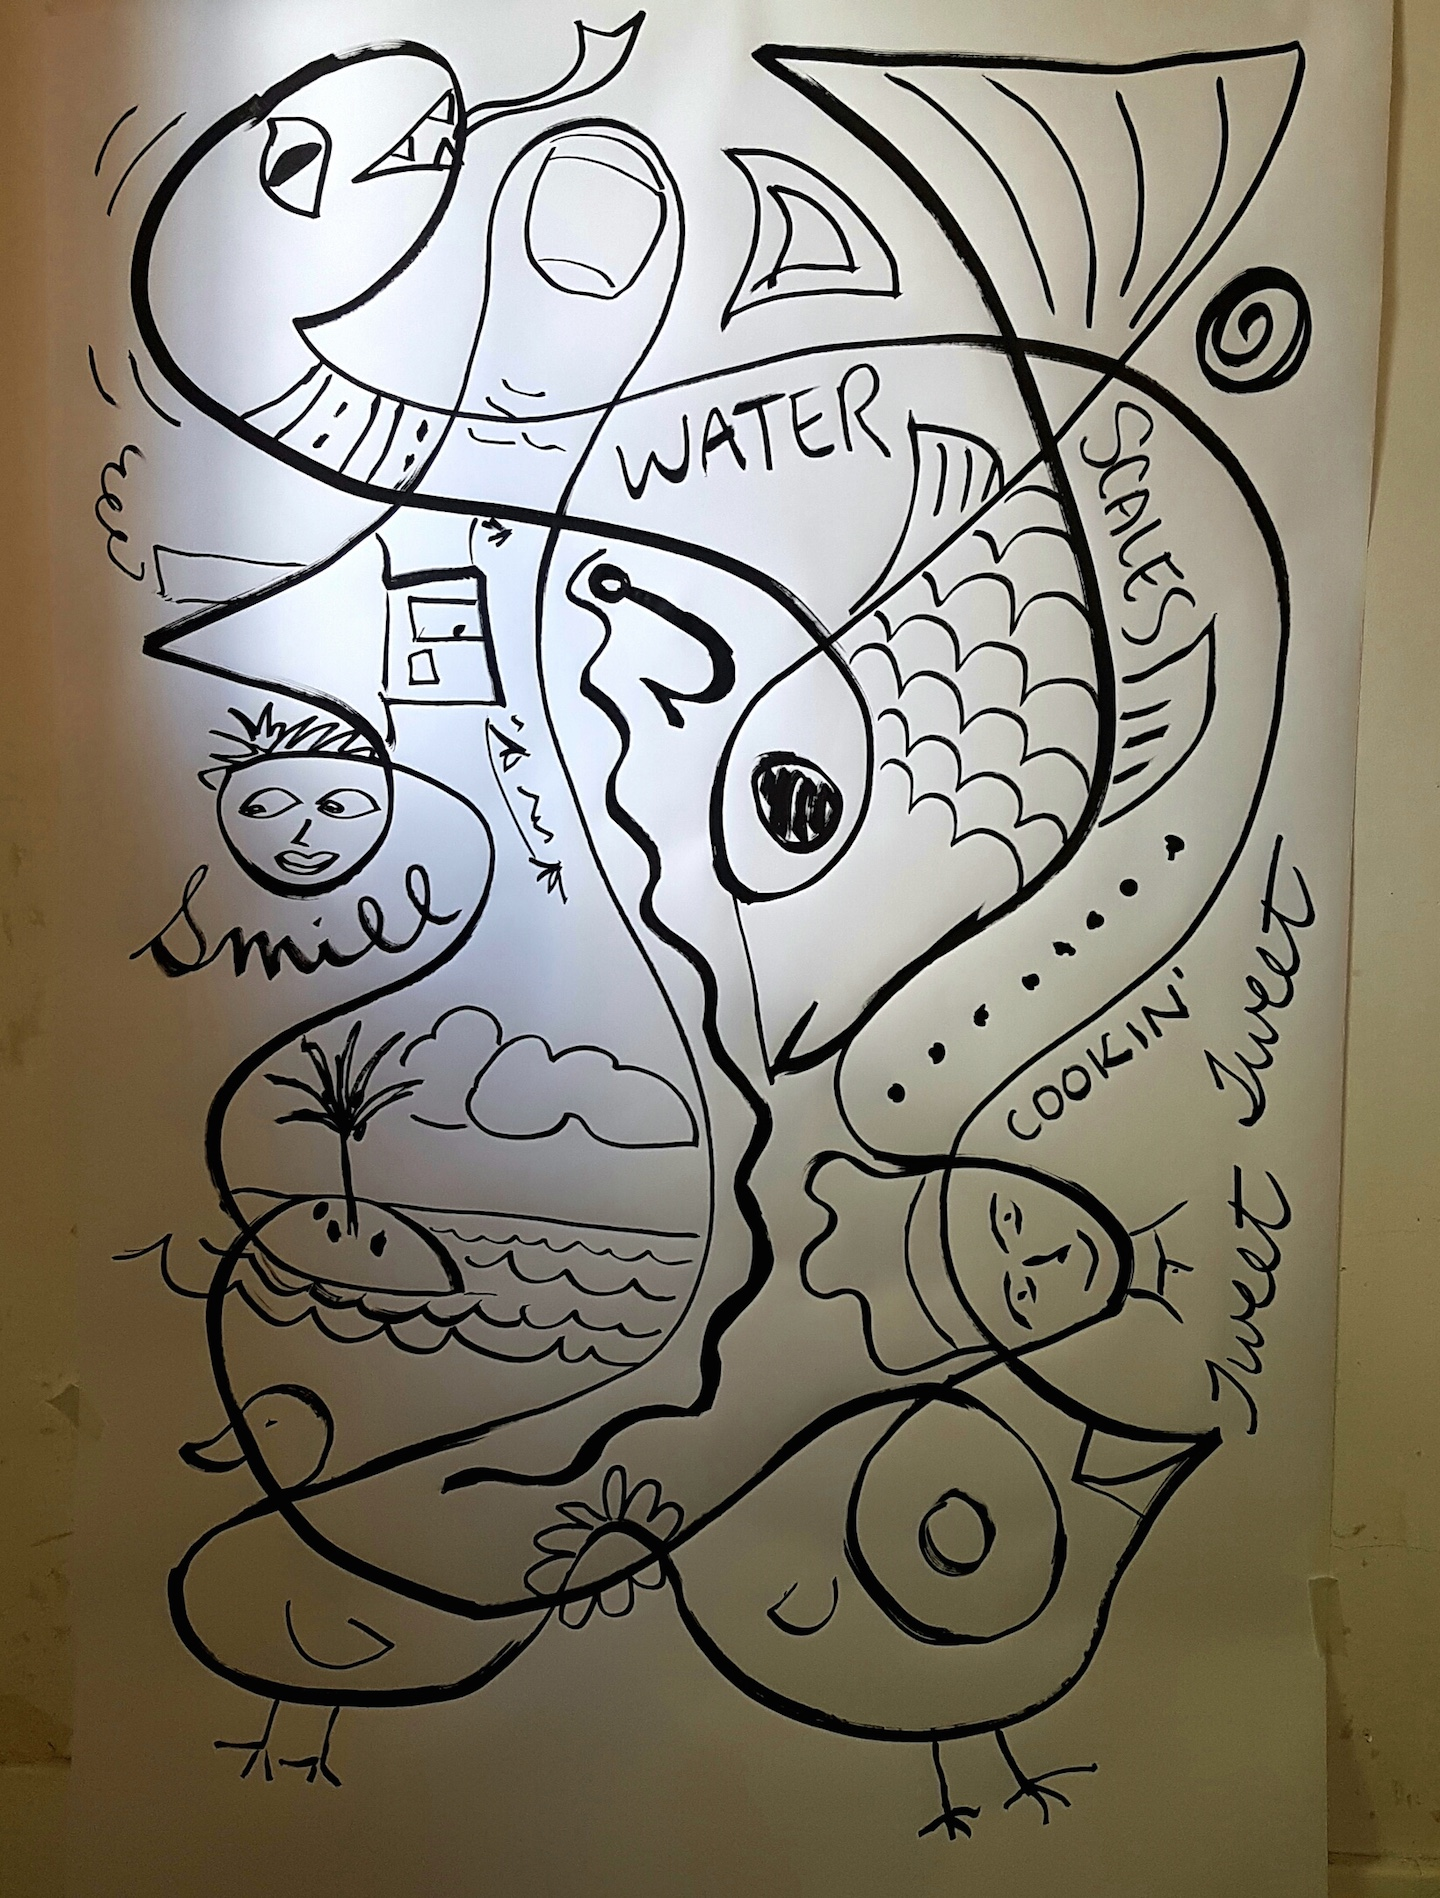 "Drawing on the wall. 42"" x 60"" (ish)"